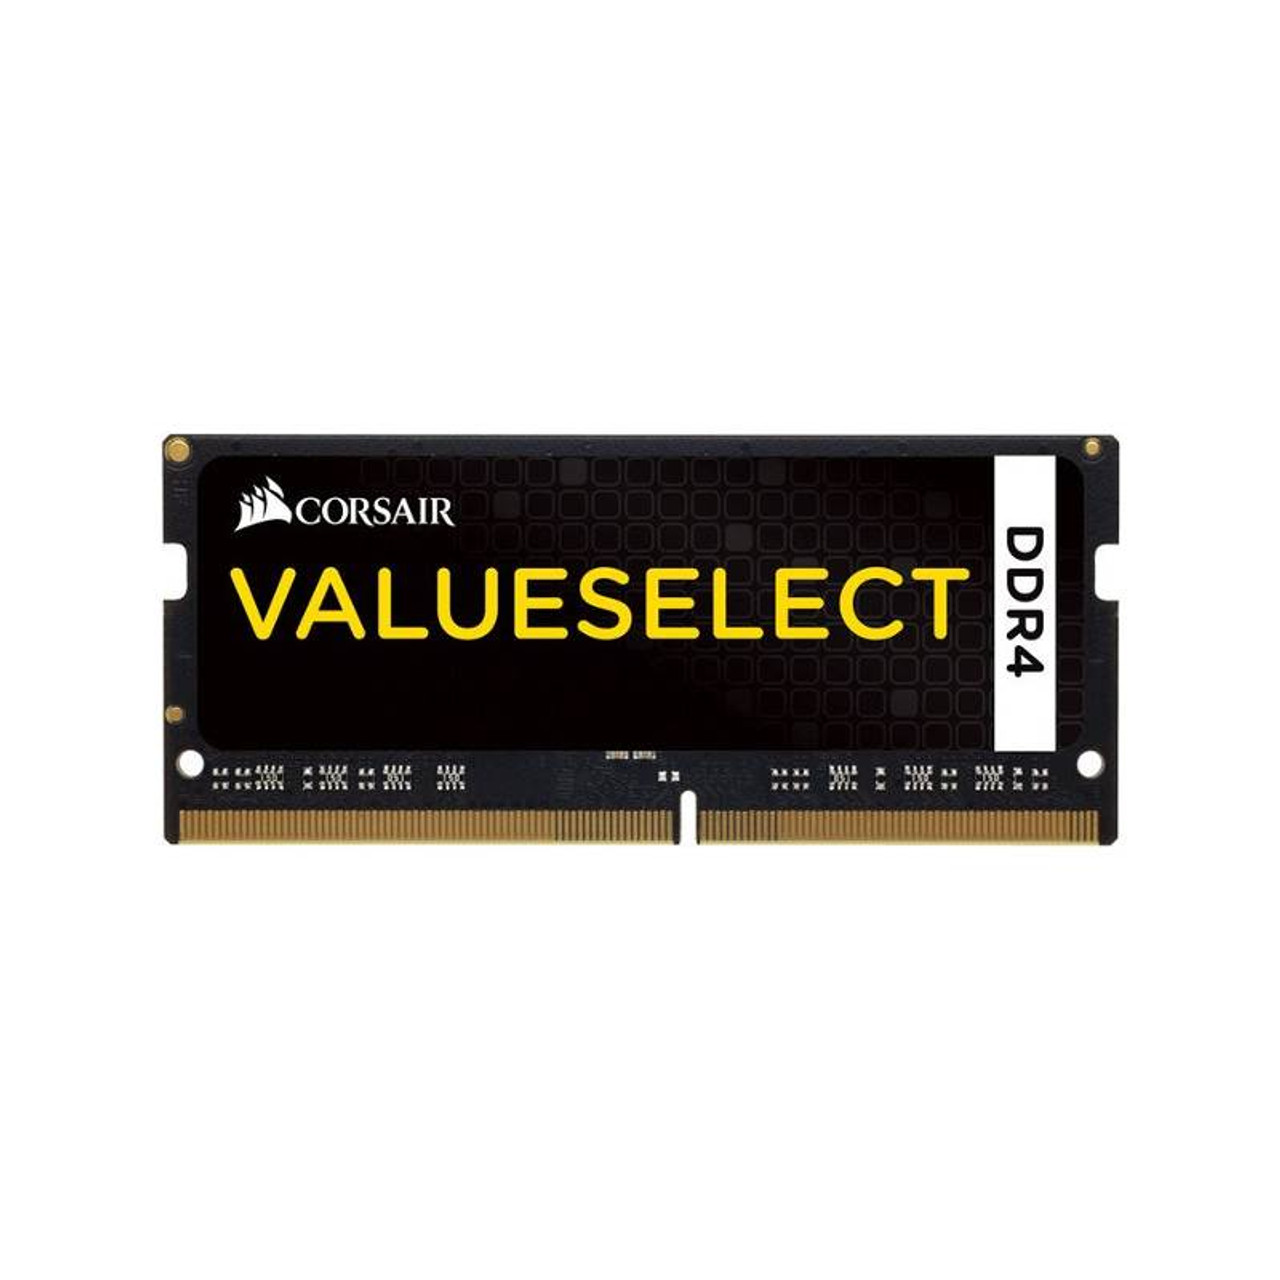 Product image for Corsair 16GB (1x16GB) DDR4 SODIMM   CX Computer Superstore